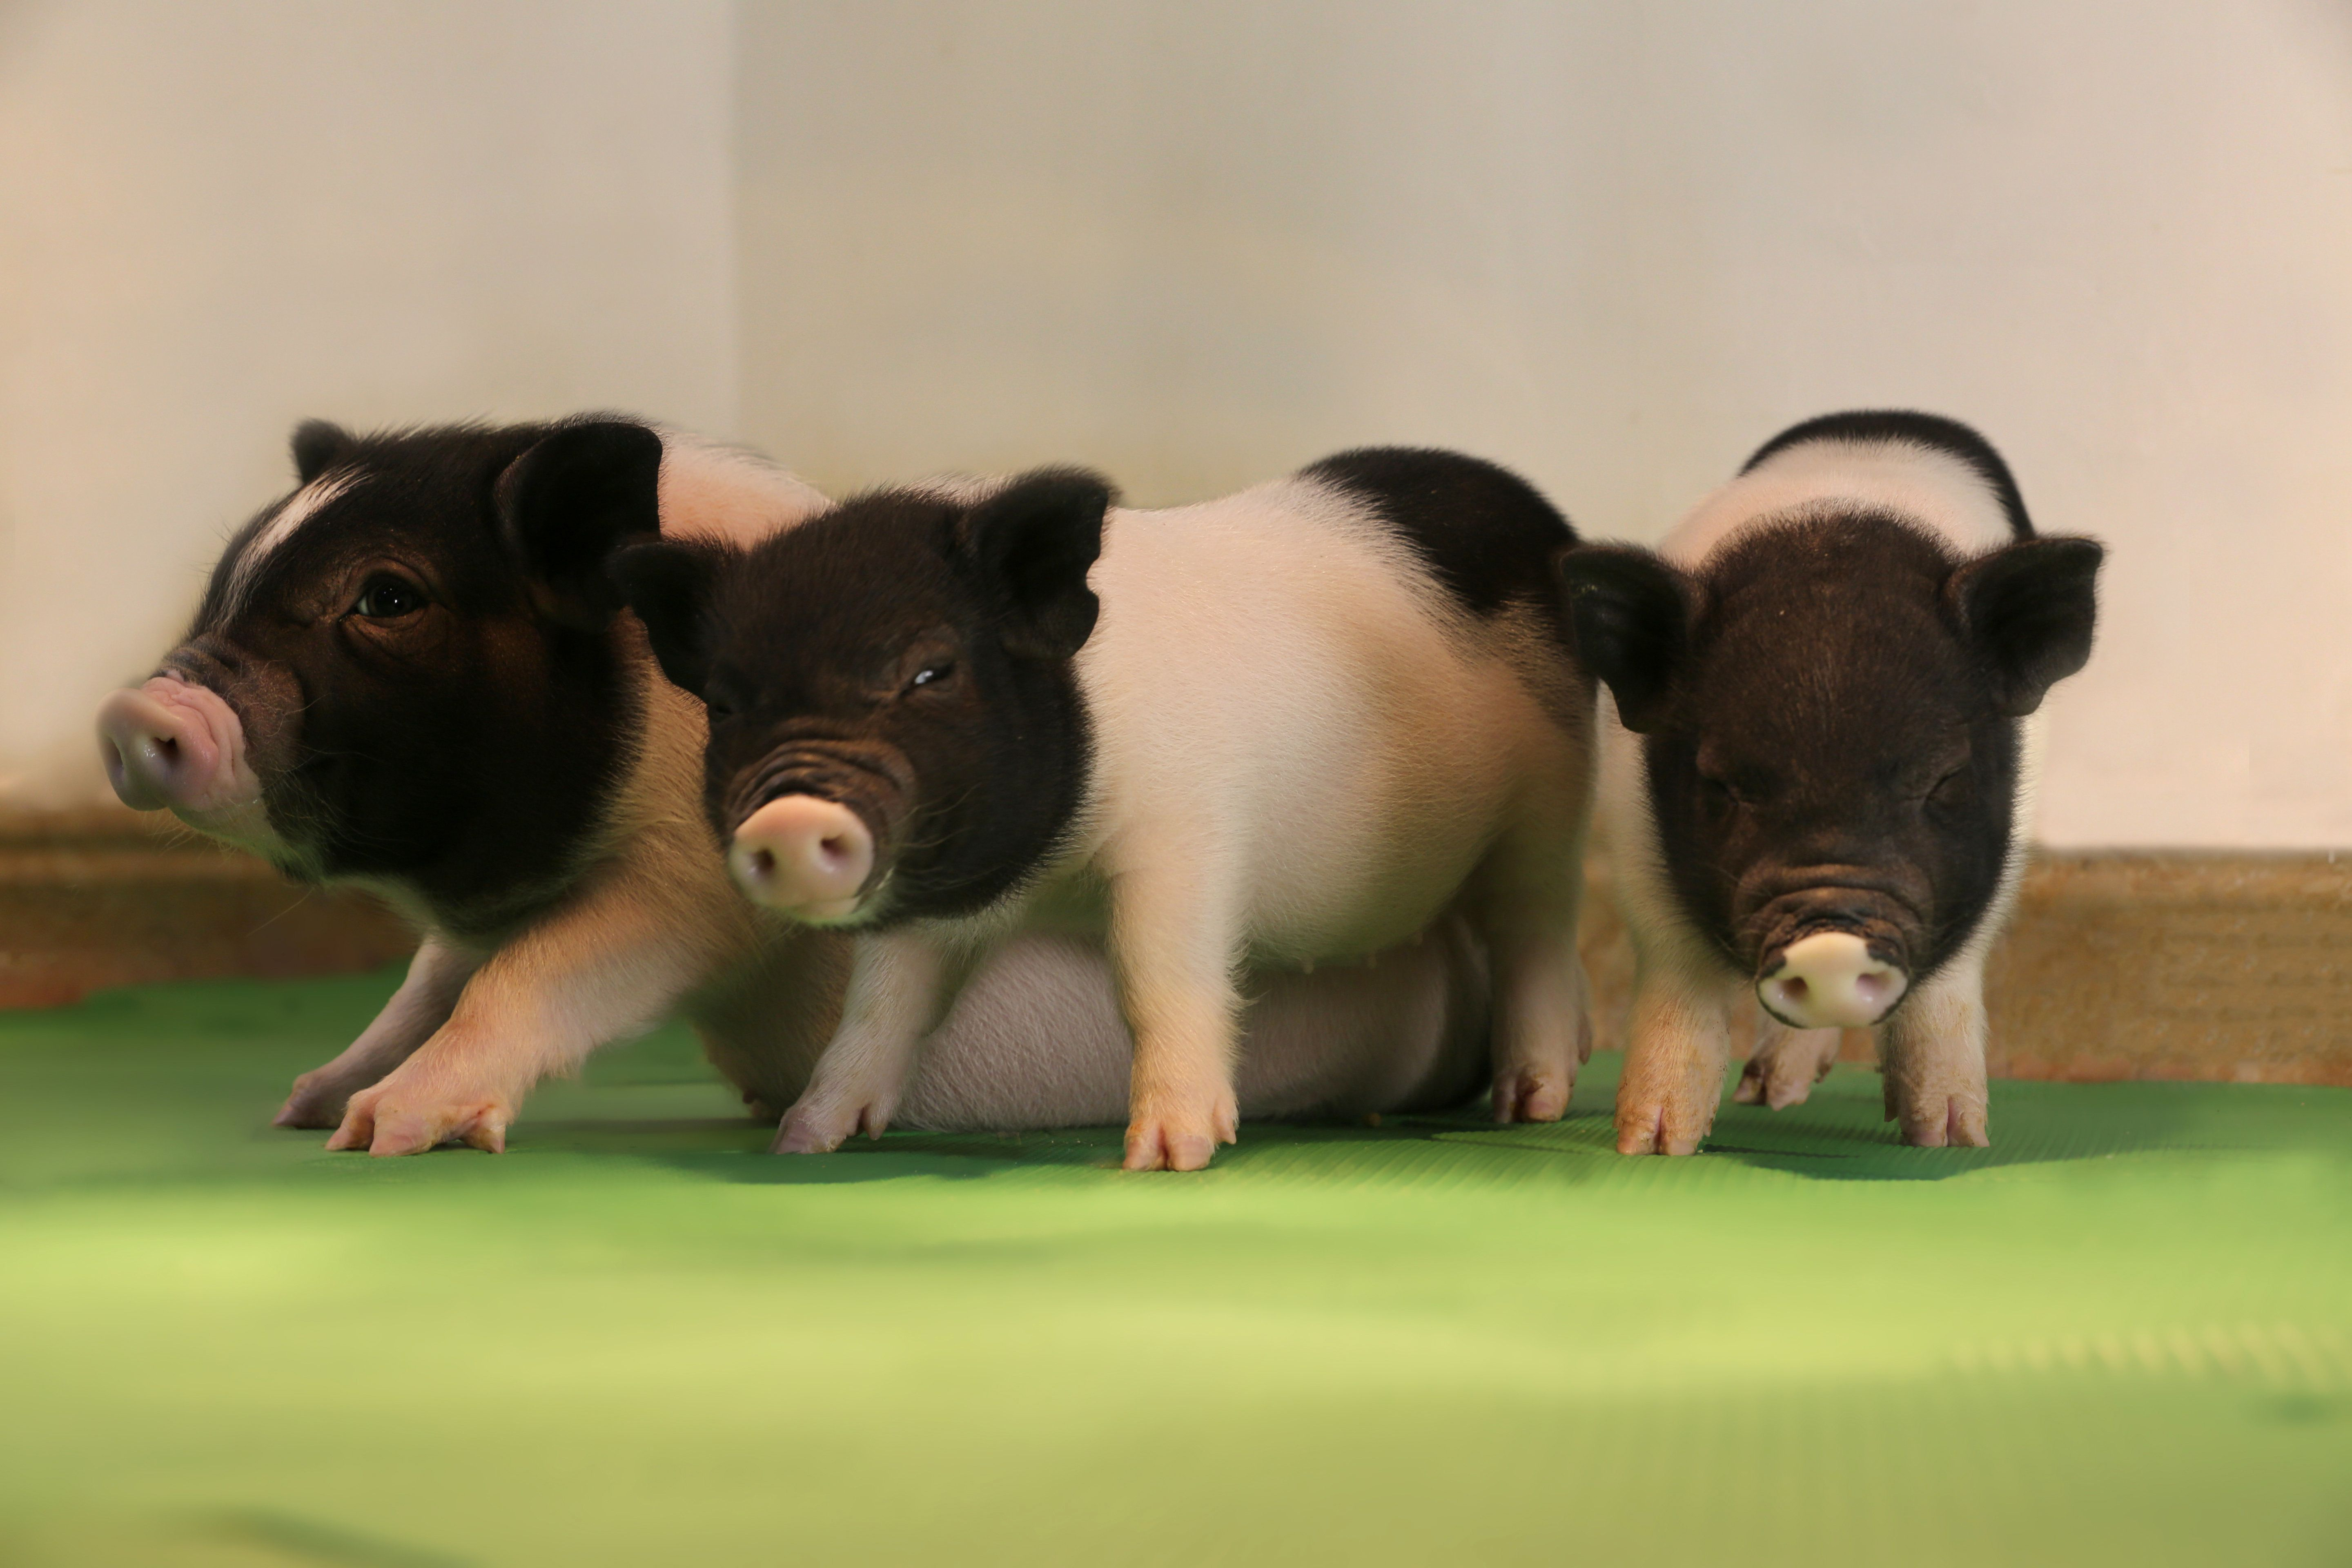 eGenesis' pigs are the first to be free of a group of pig-specific viruses that make their organs unsuitable for human transp